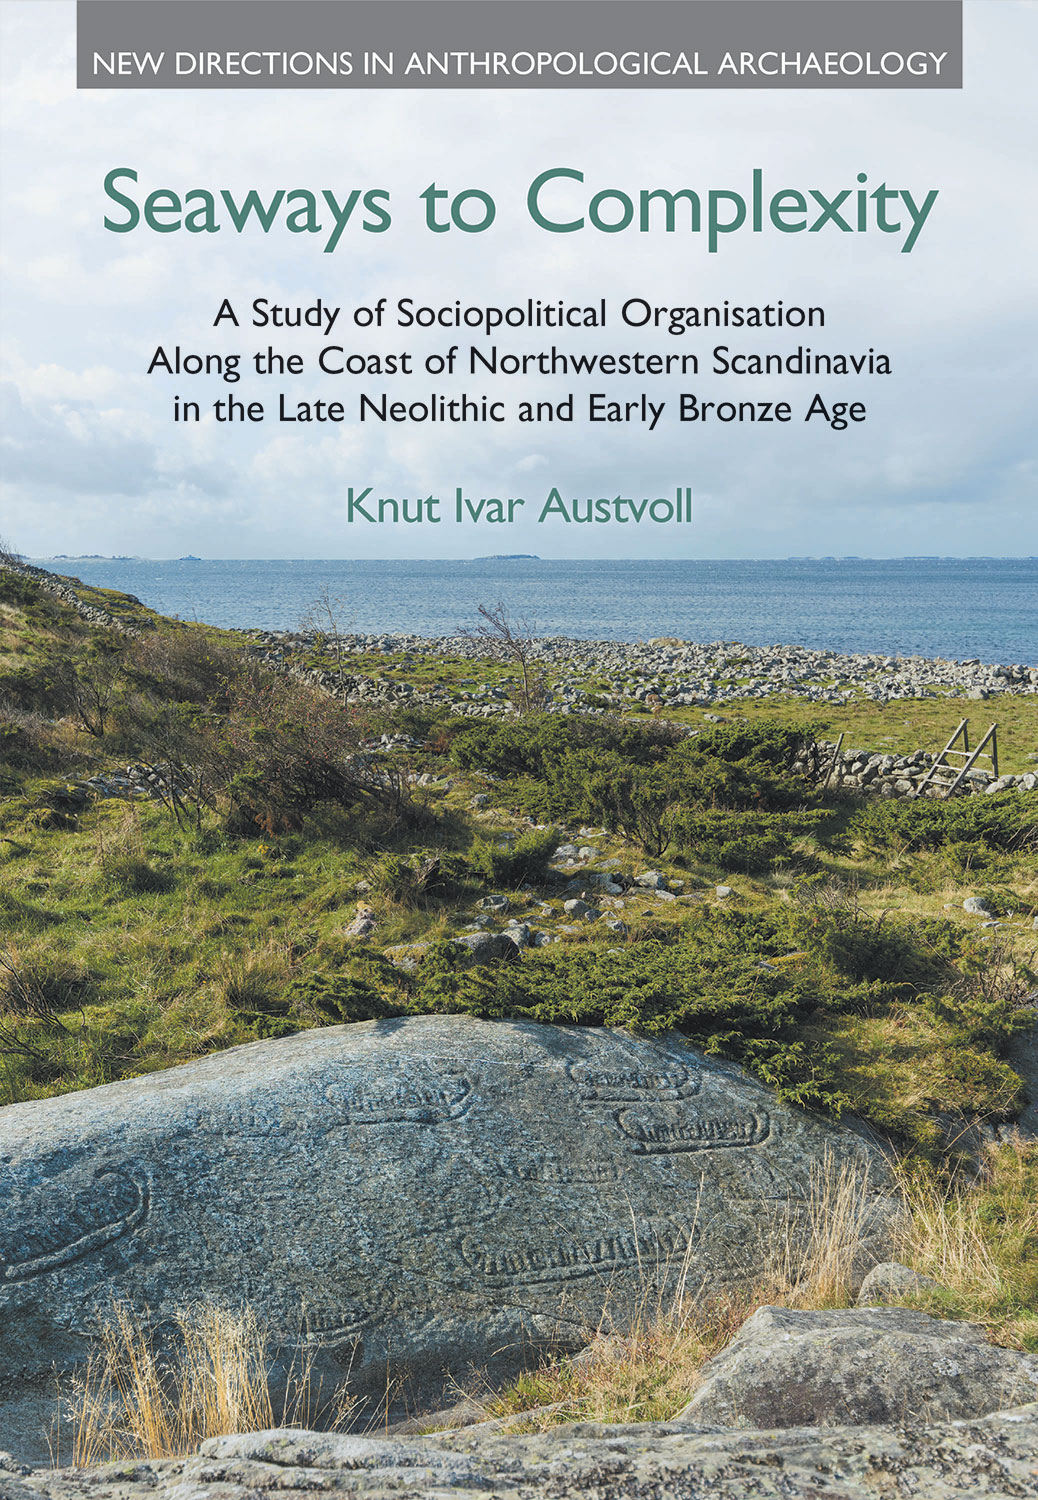 Seaways to Complexity - A Study of Sociopolitical Organisation Along the Coast of Northwestern Scandinavia in the Late Neolithic and Early Bronze Age - Knut Ivar Austvoll